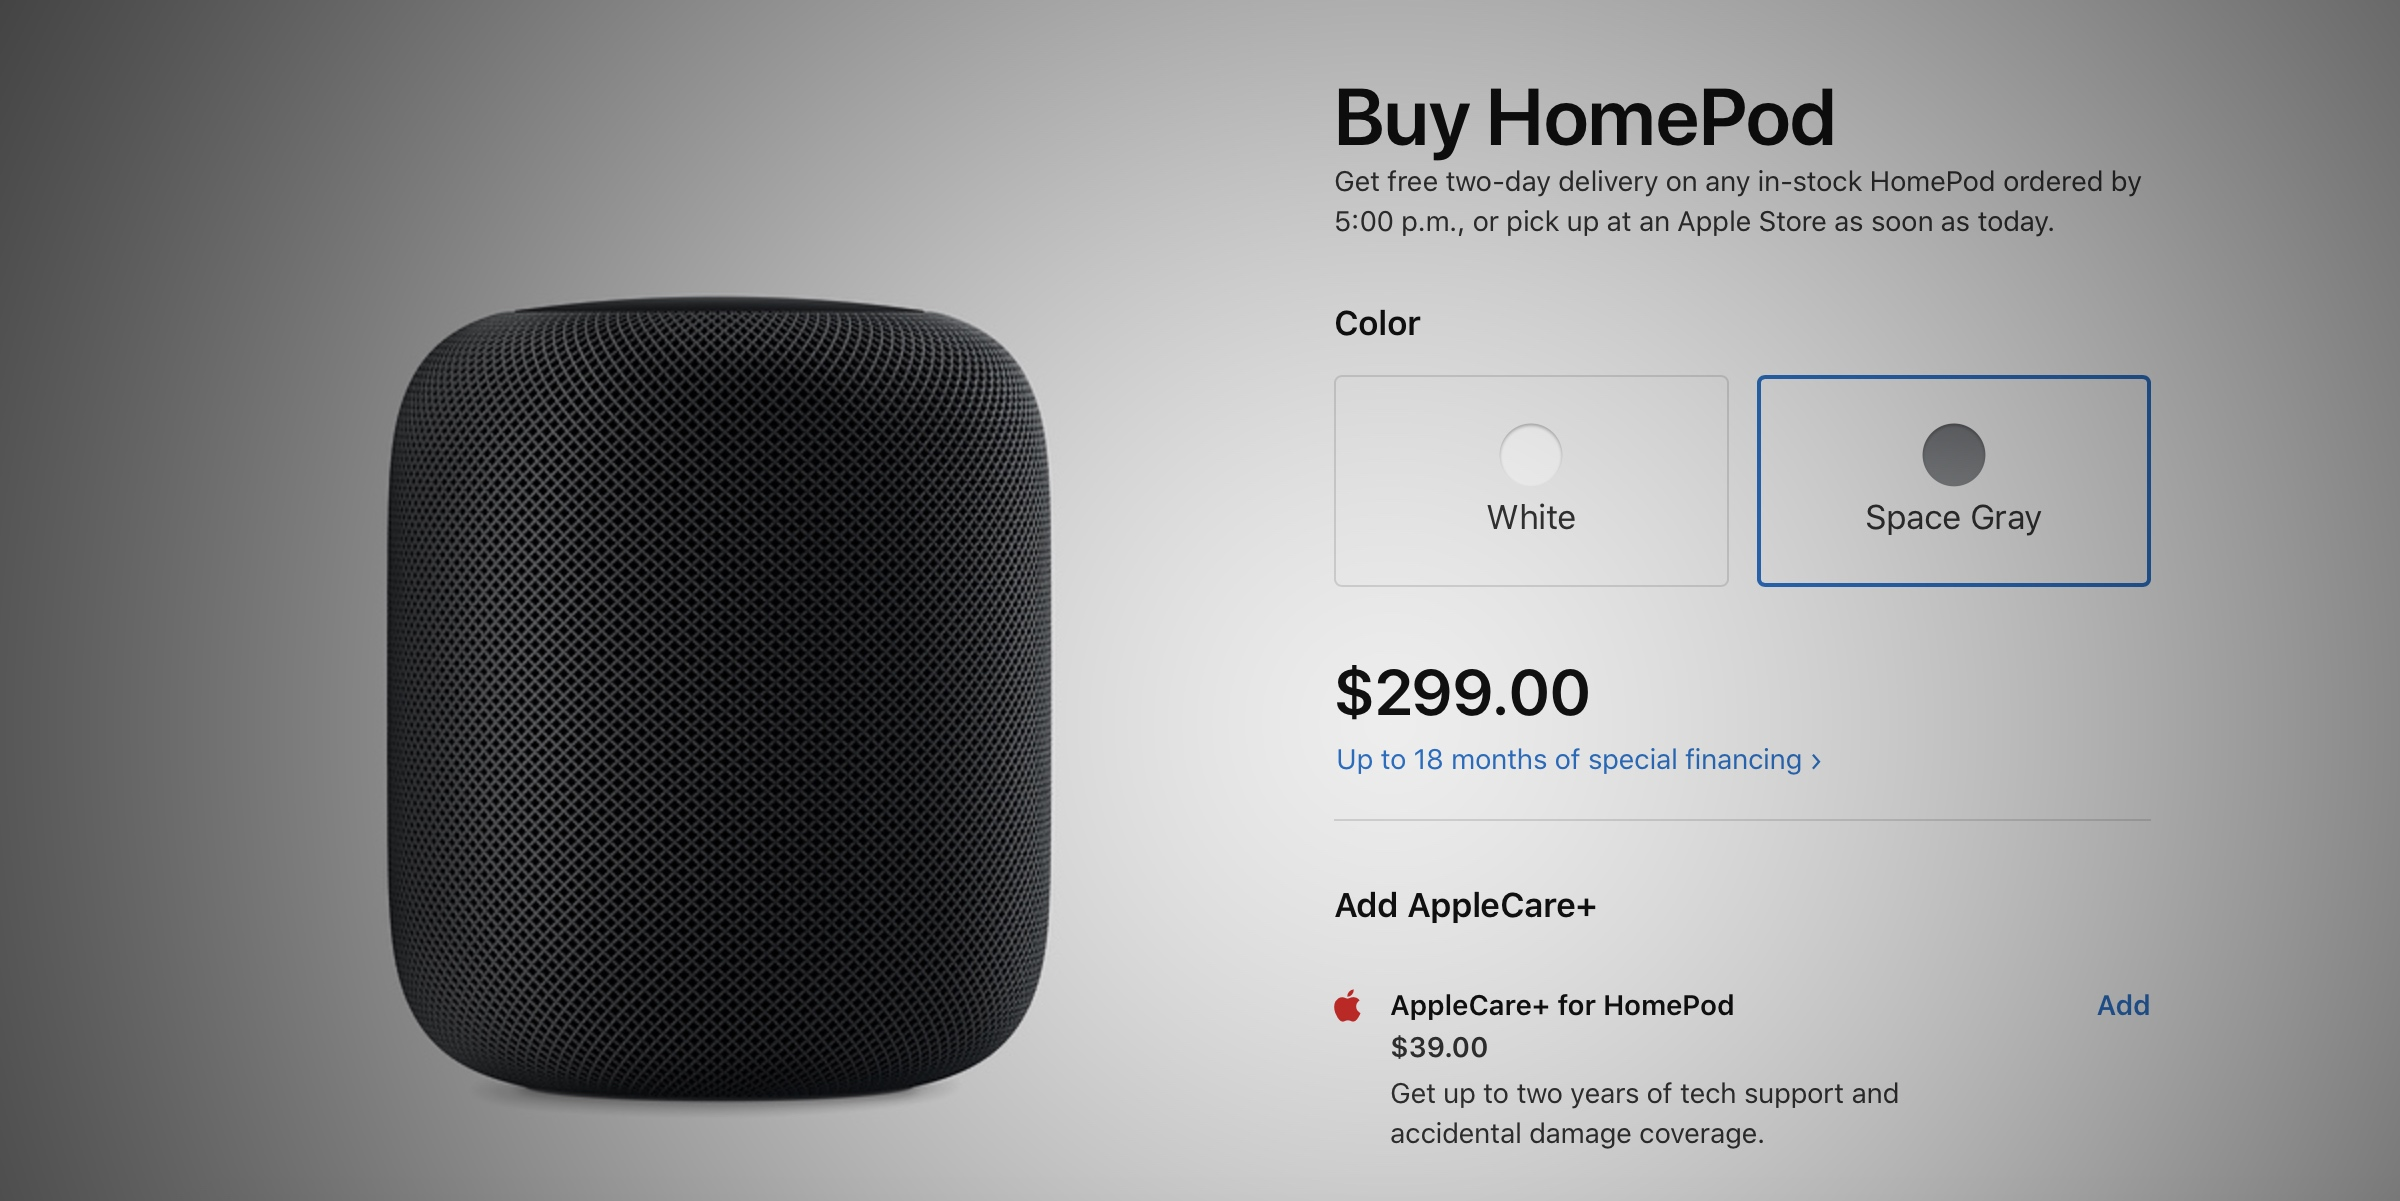 Apple cuts price of HomePod worldwide, now $299 at the US Apple Store